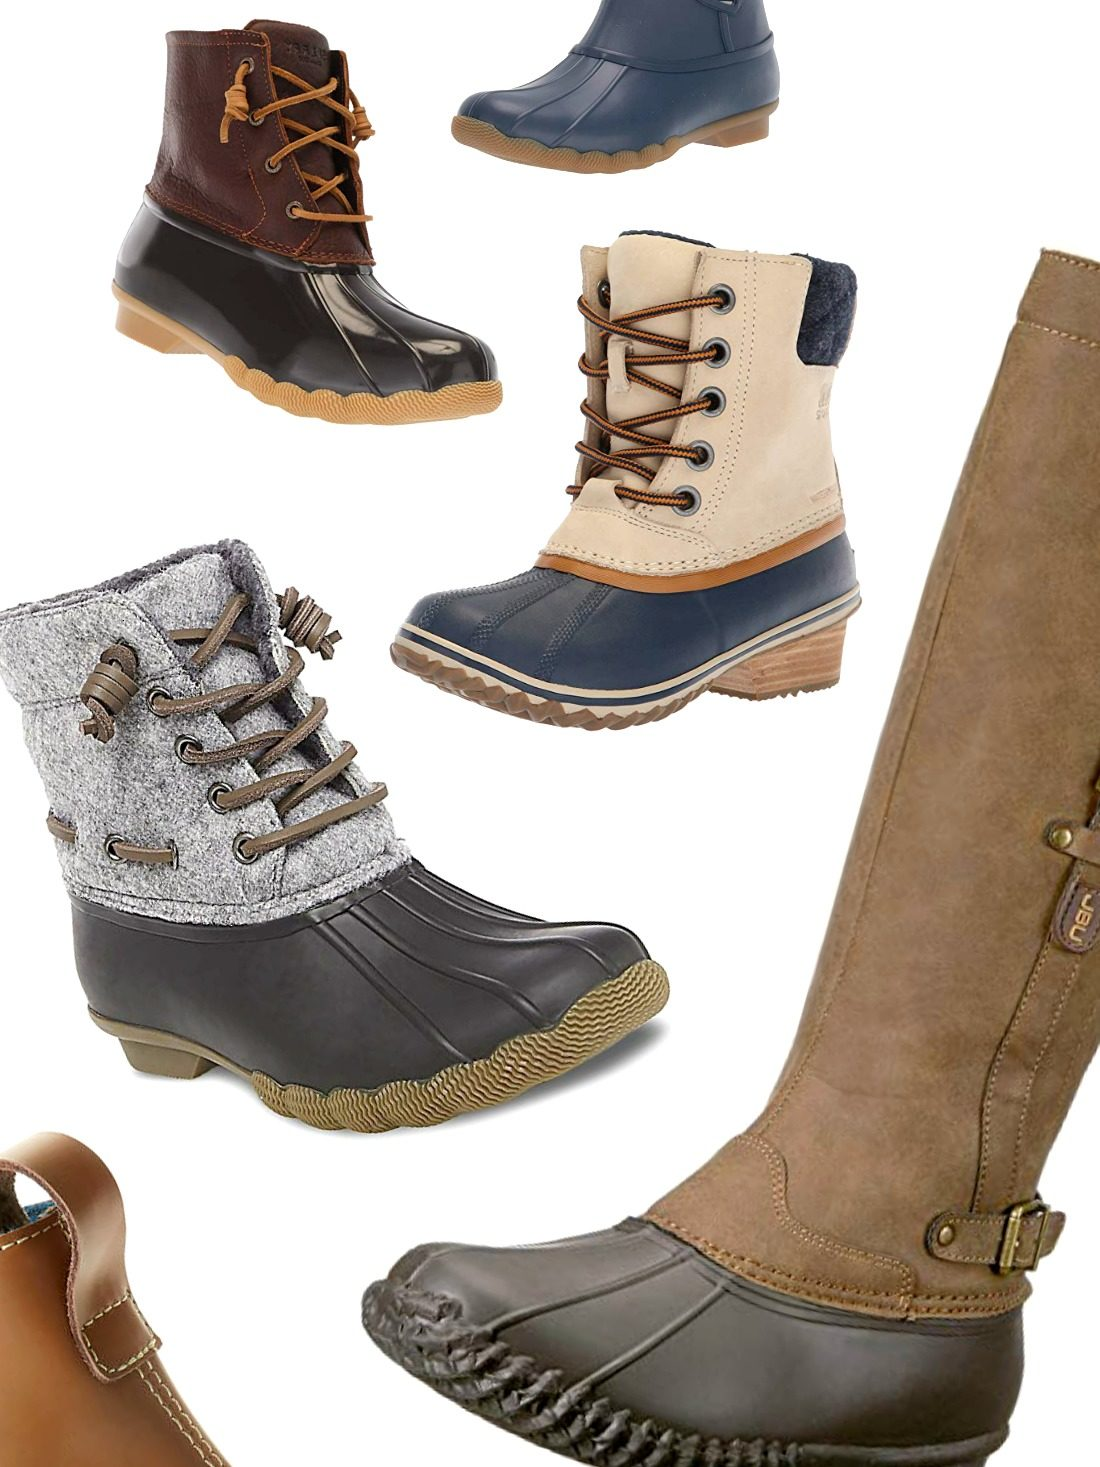 You're only a click away from our best duck boots women love to wear. See for yourself what reviewers have to say about these flattering picks!